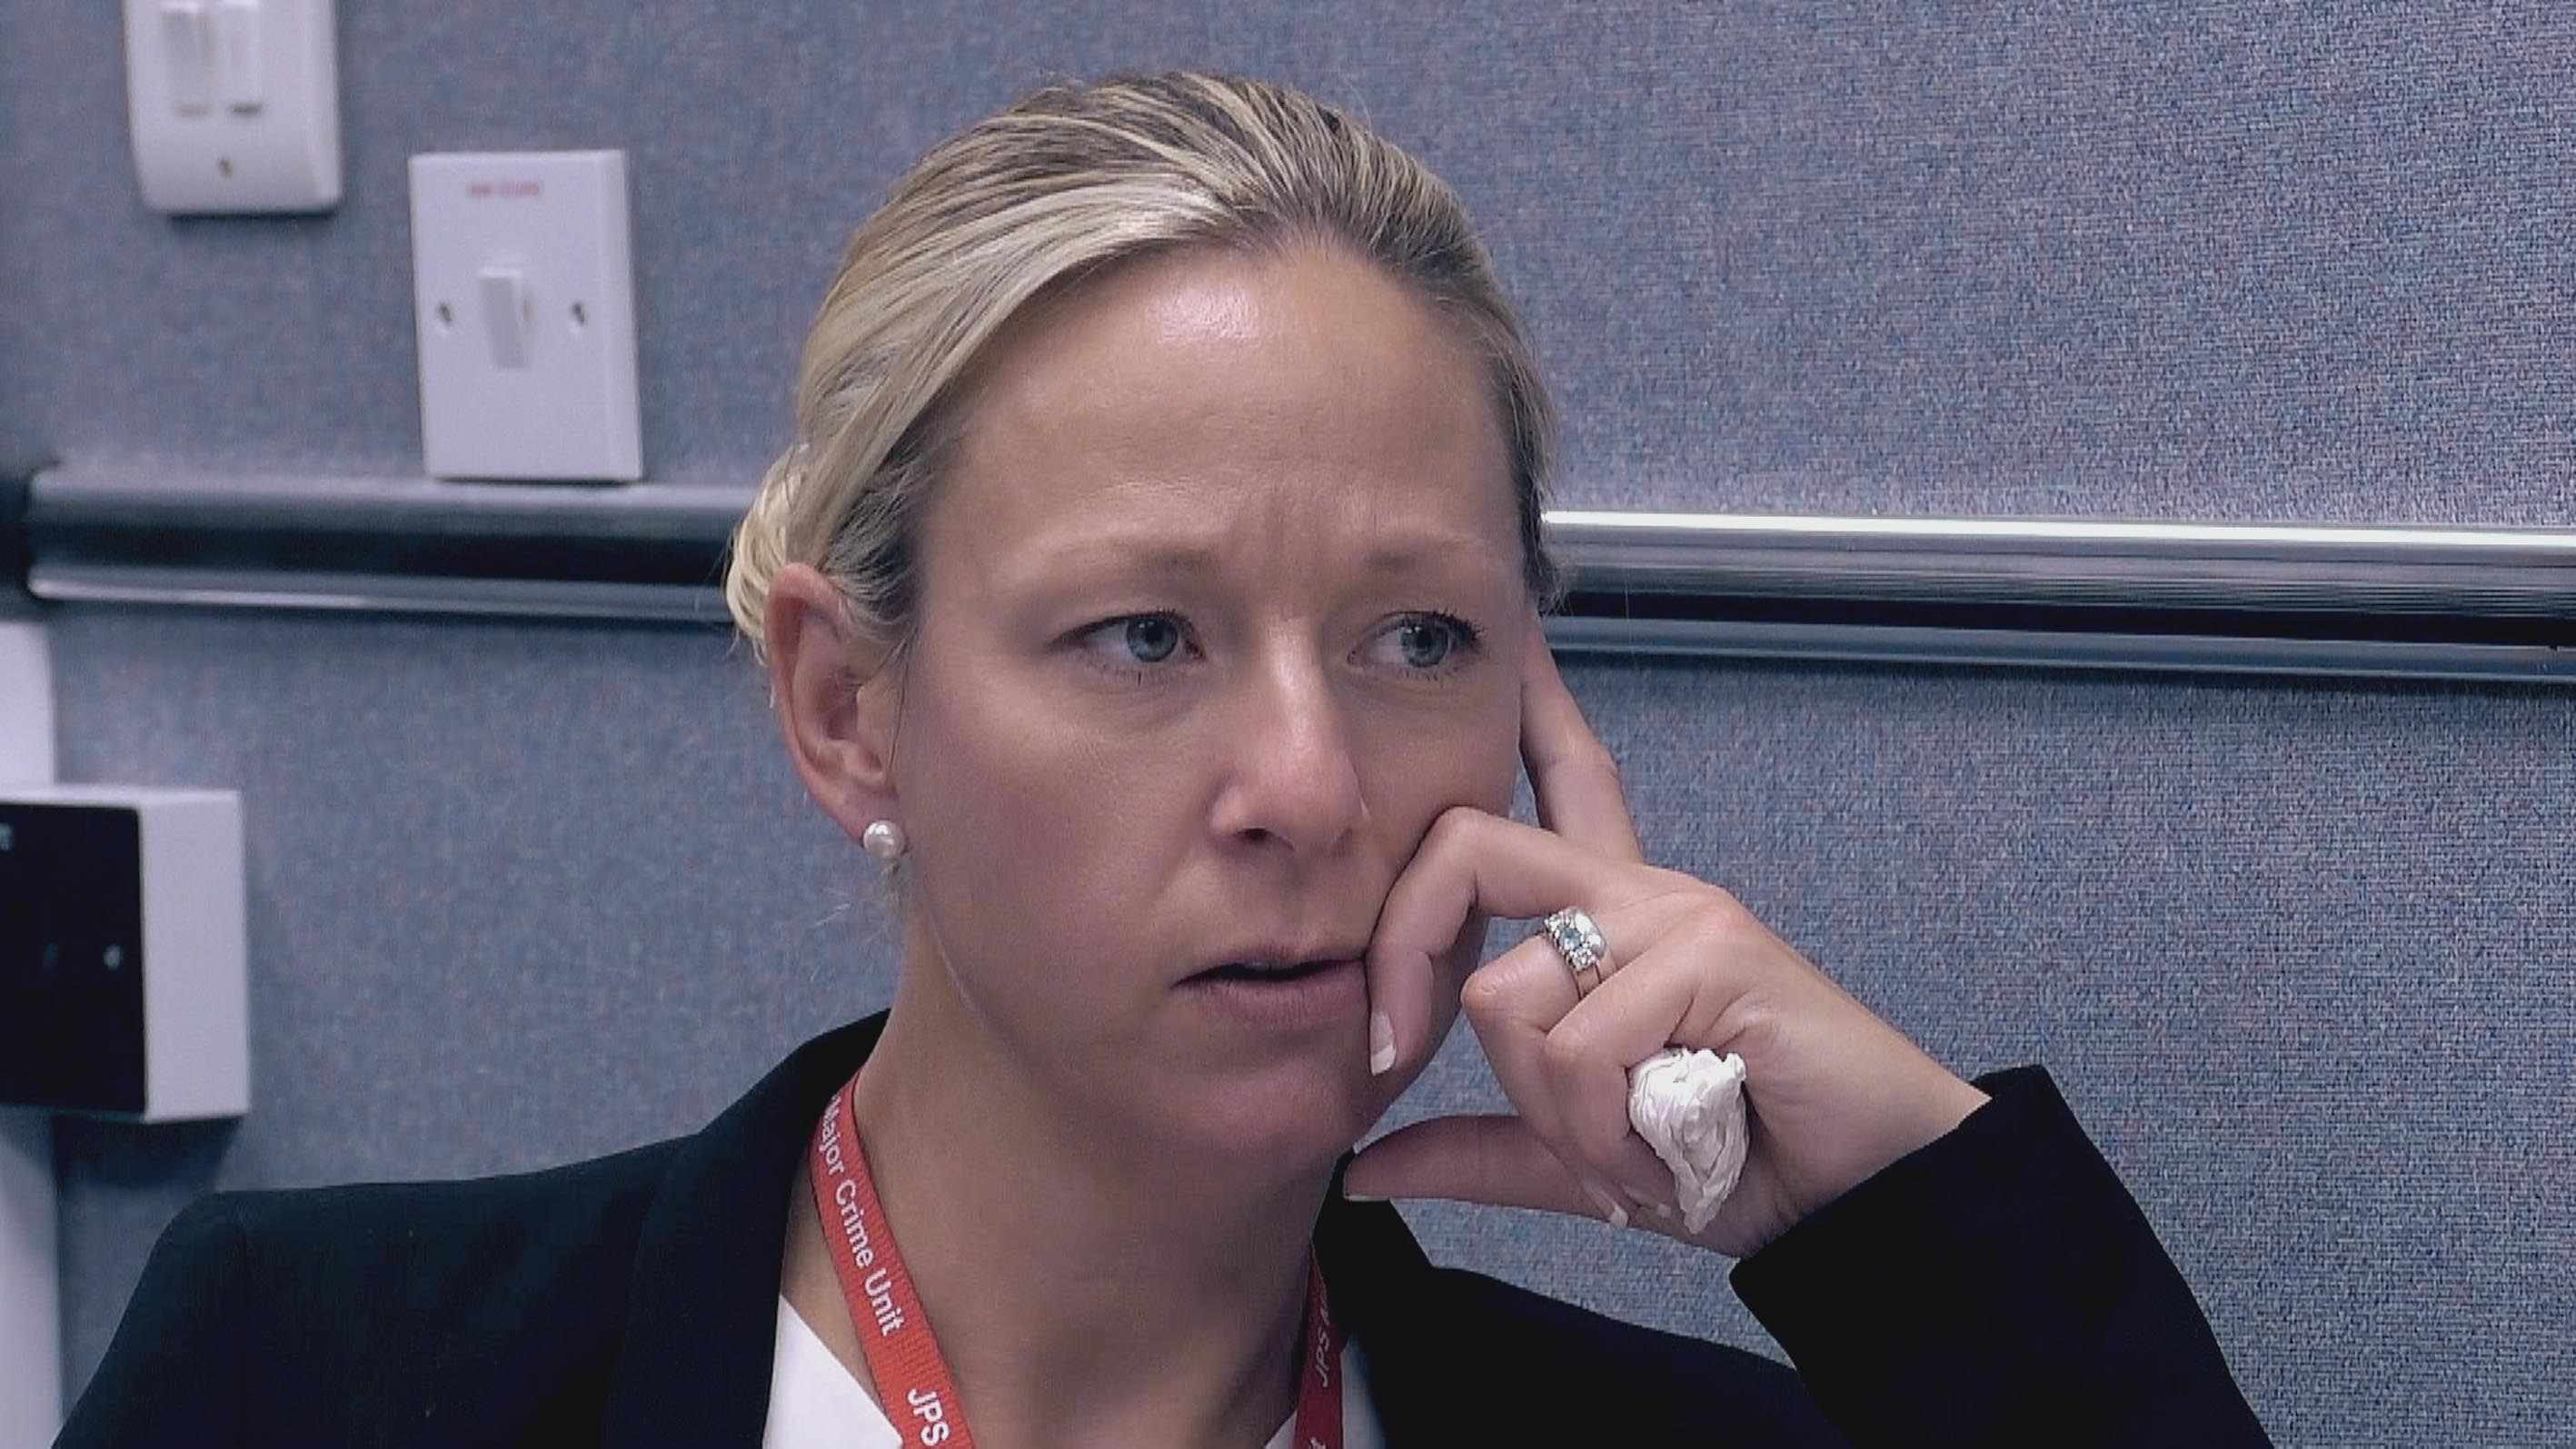 DC Vicki Twyford interviewing Dean Robinson on suspicion of murder (Channel 4)